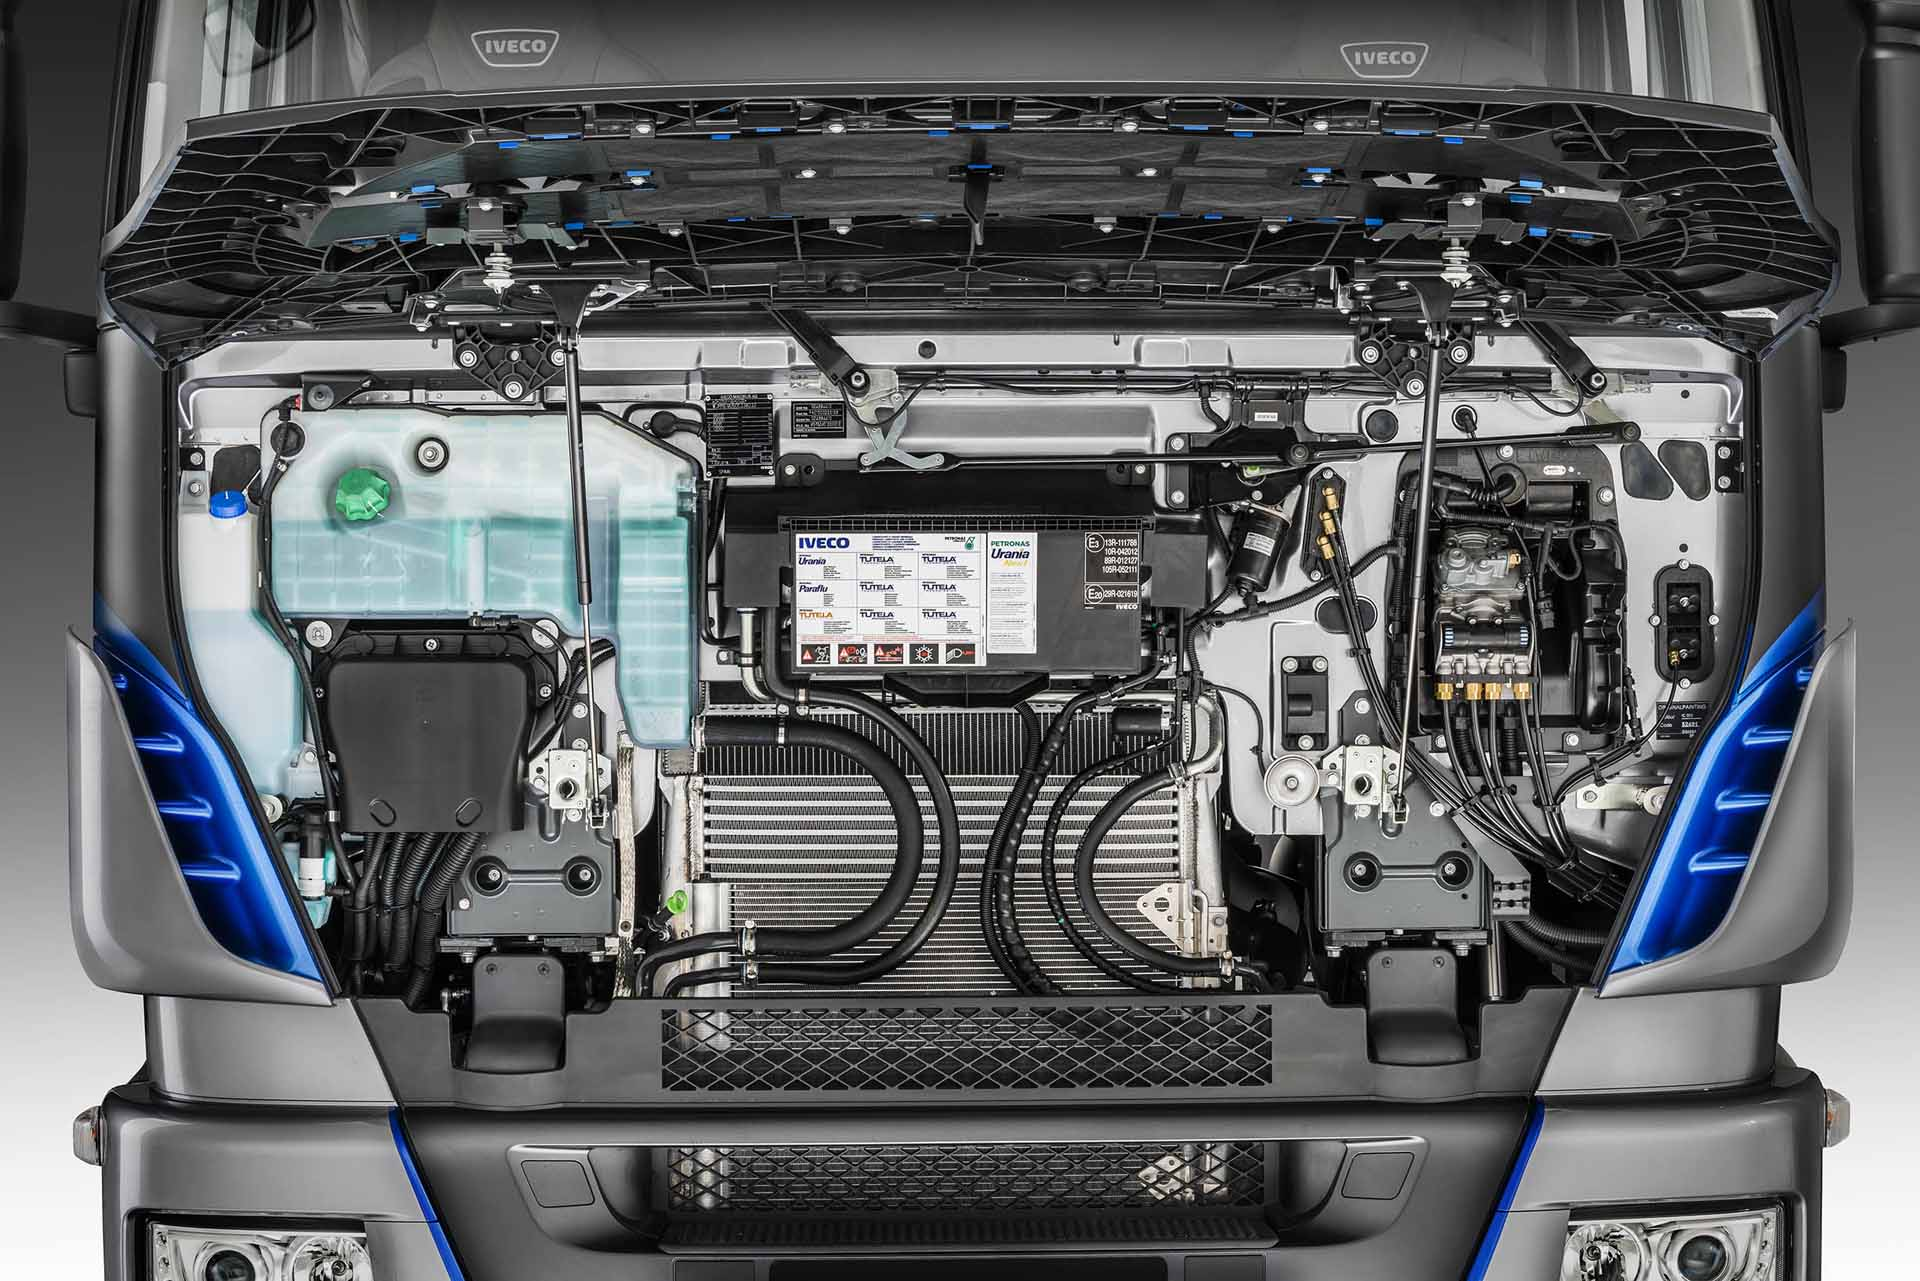 iveco-new-stralis-xp-engine_27852925075_o